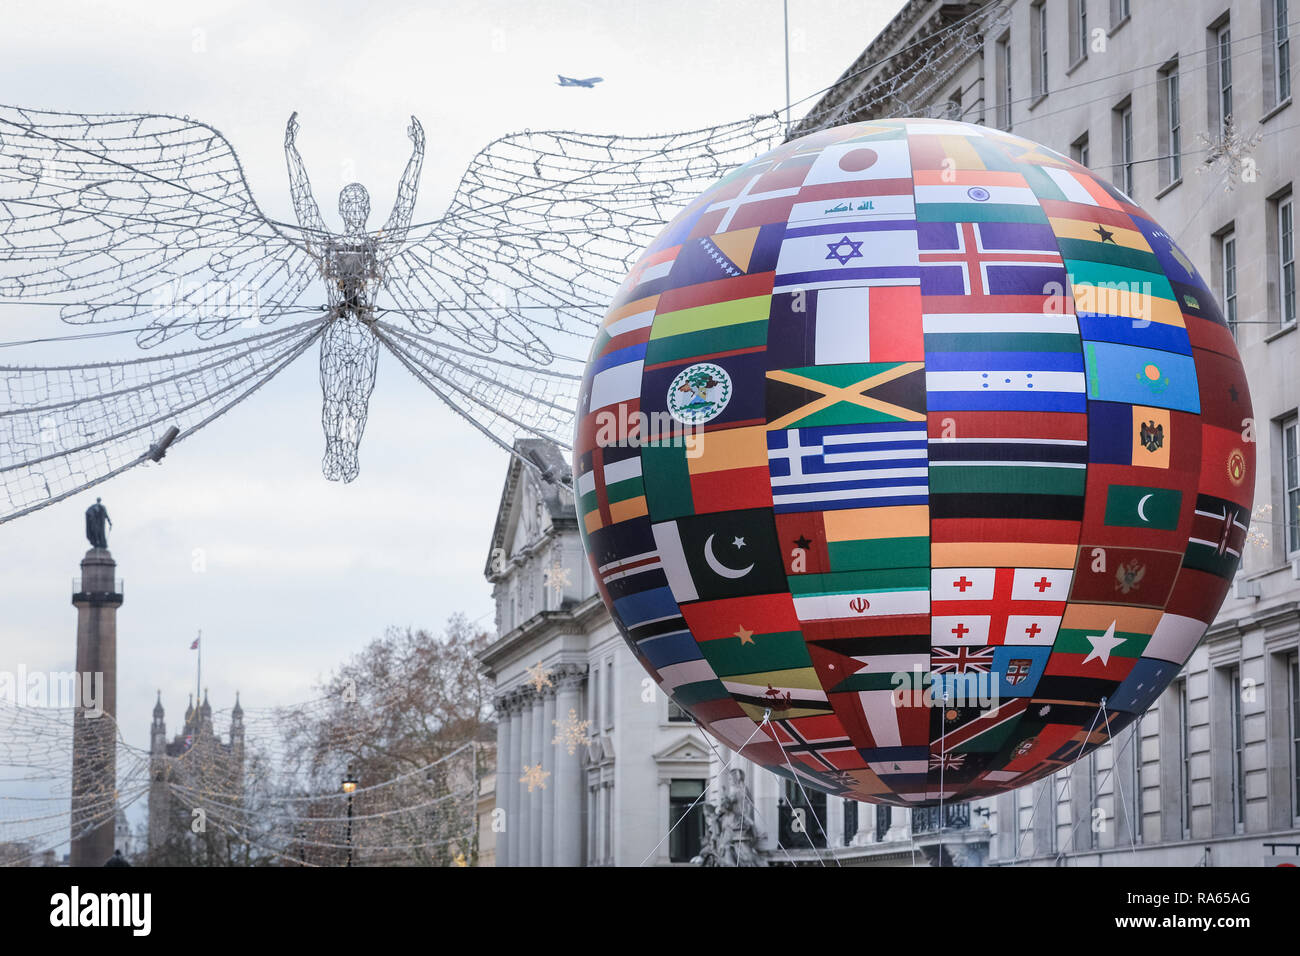 Central Christmas Parade 2019 London, UK. 1st Jan 2019. A colouful balloon with international